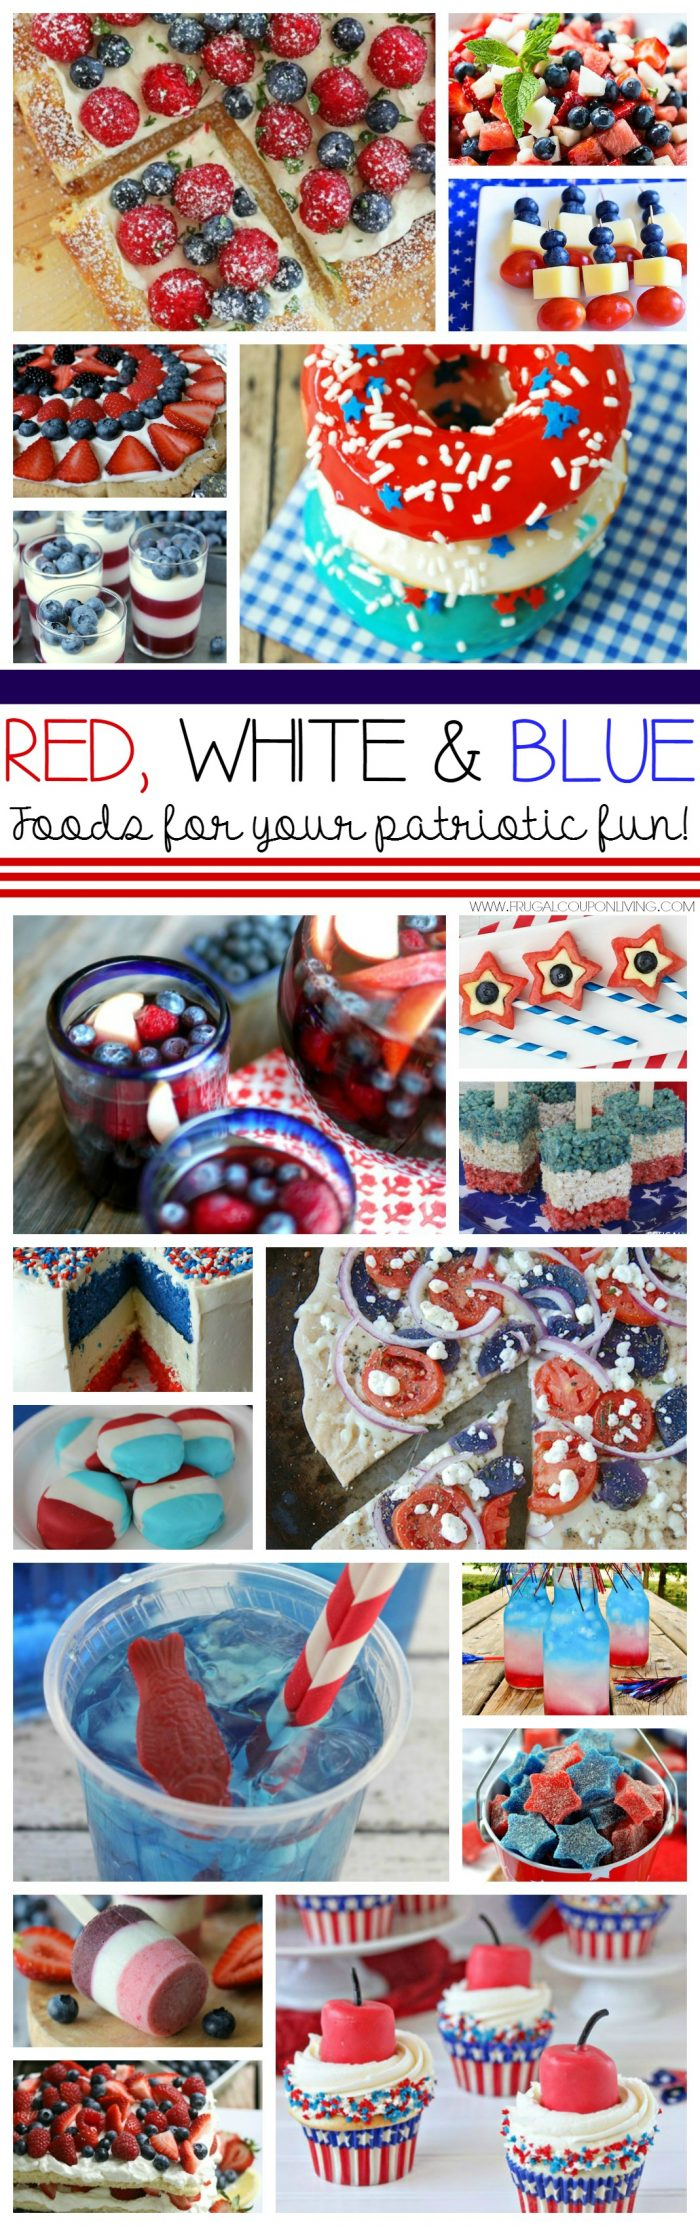 Red White  Blue Foods  Ideas for Your Gathering